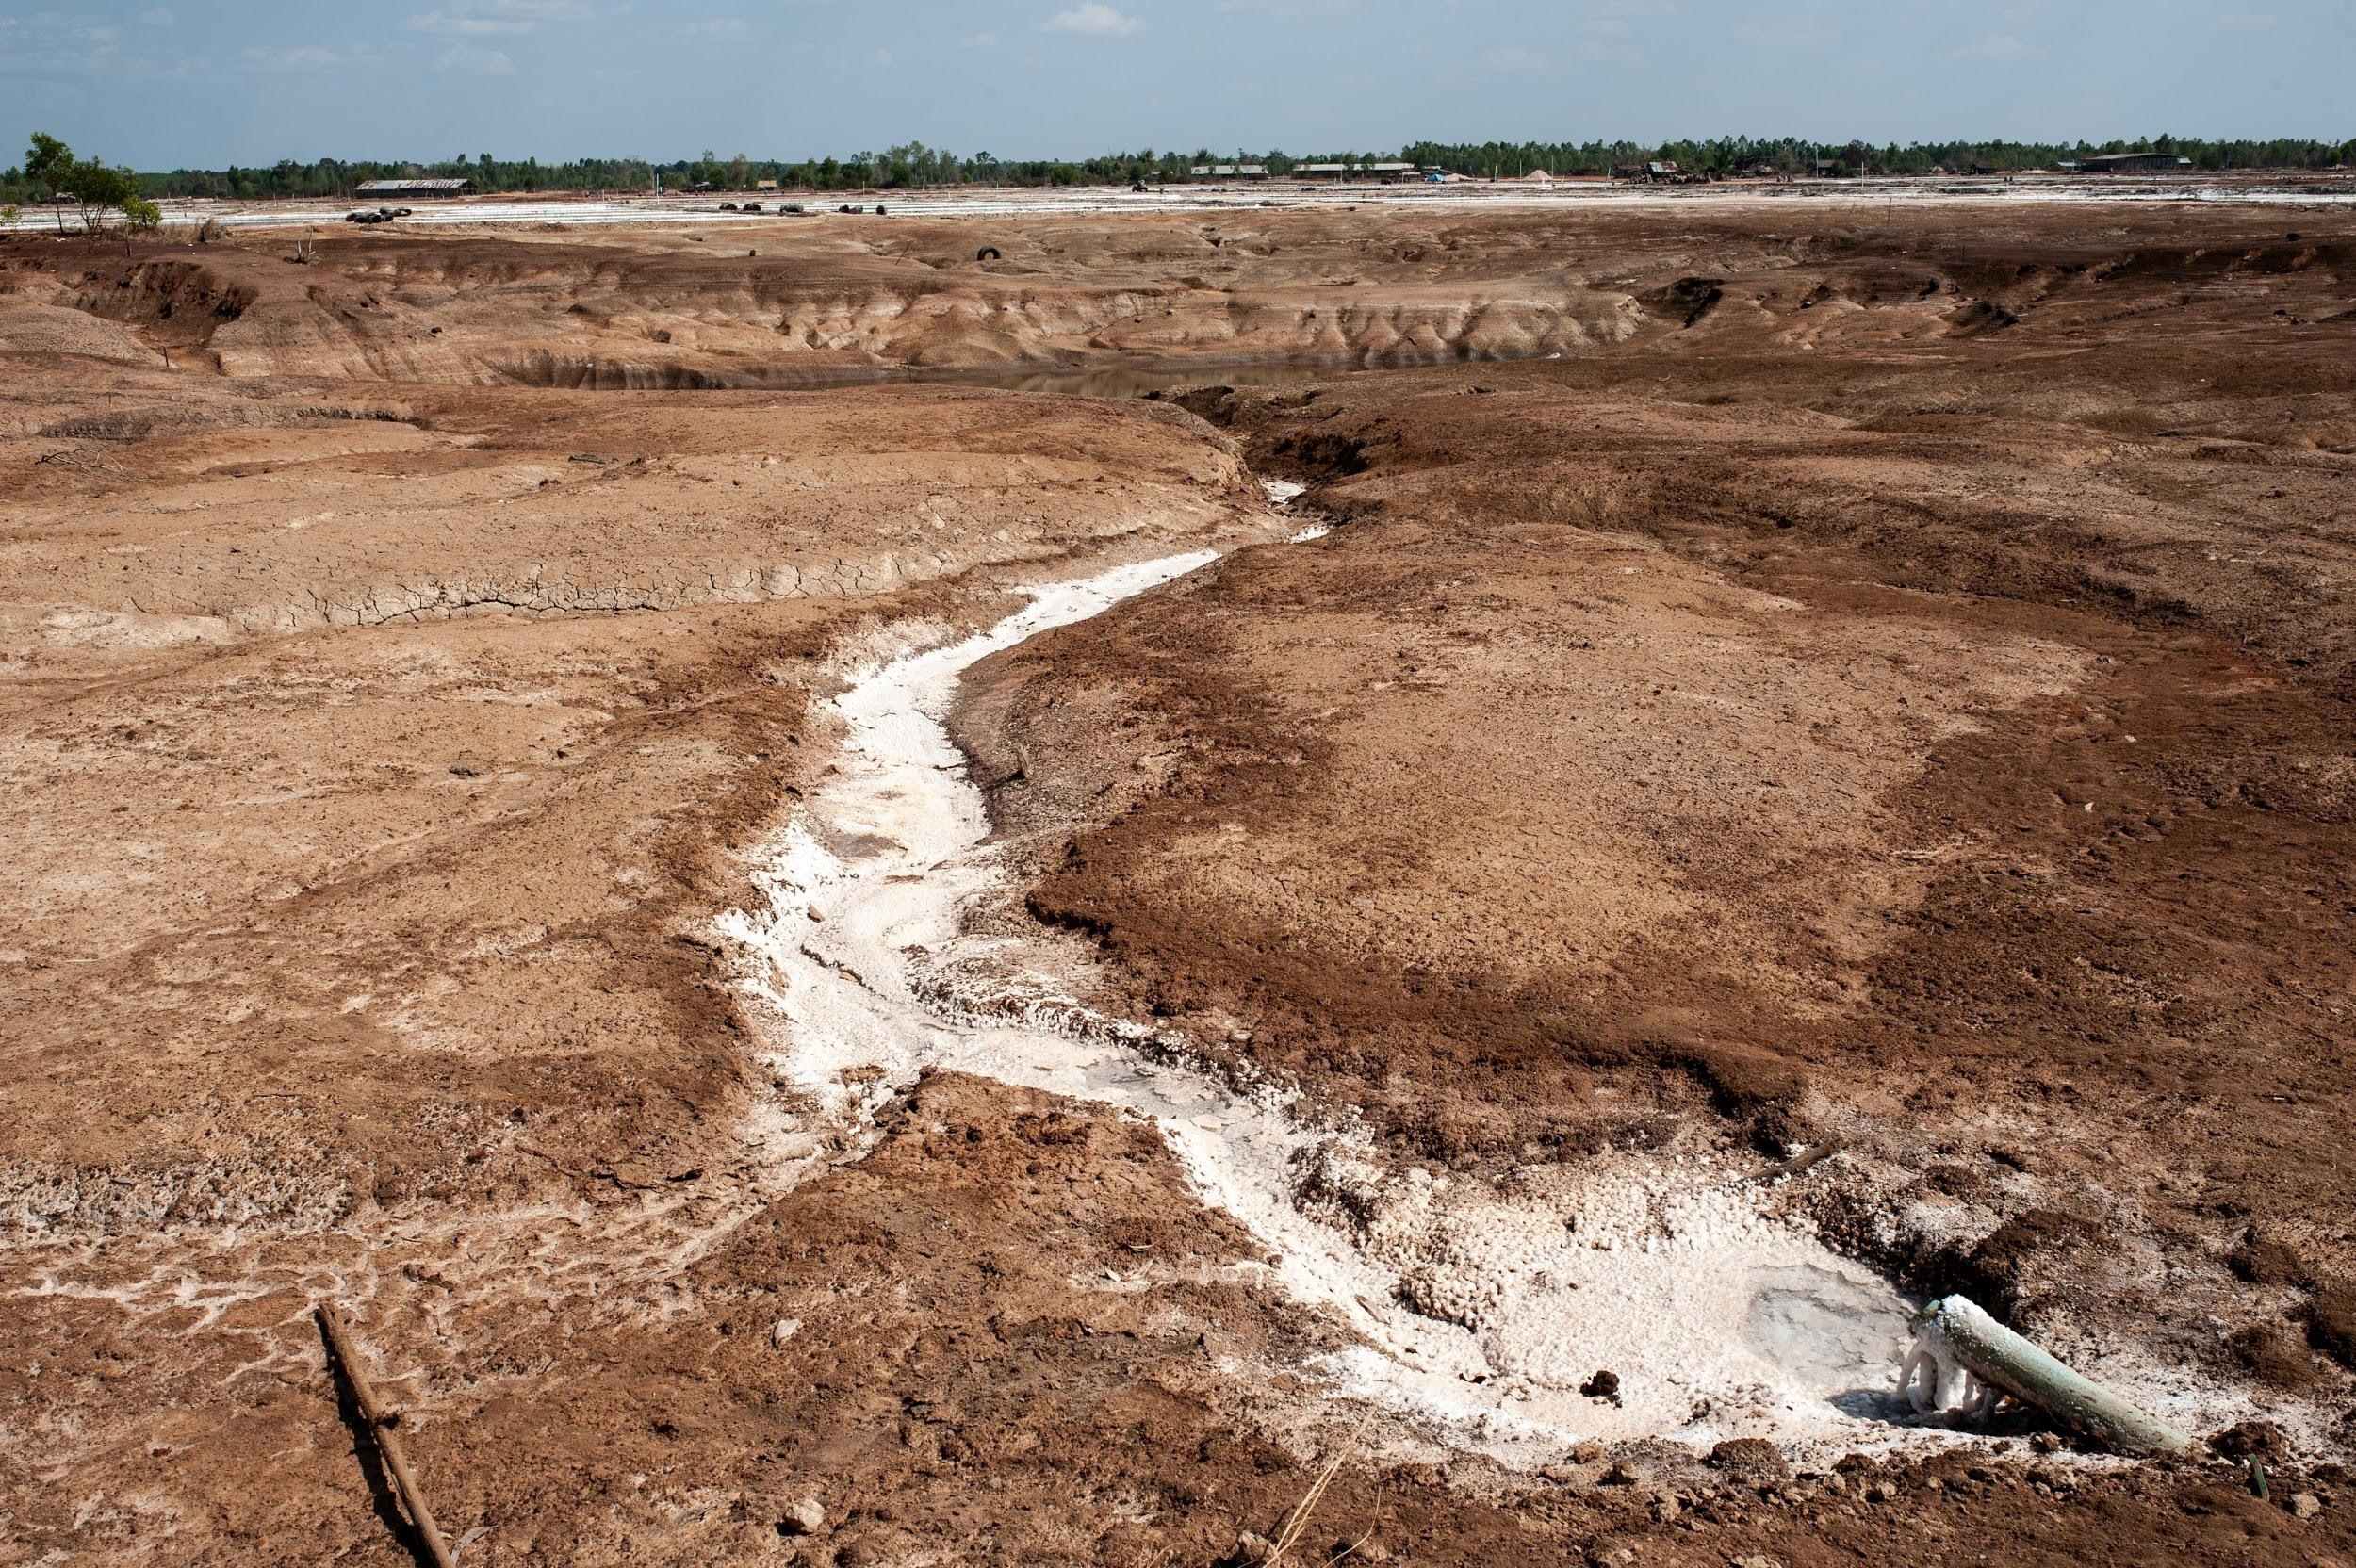 China's potash demand stirs resistance in rural Thailand